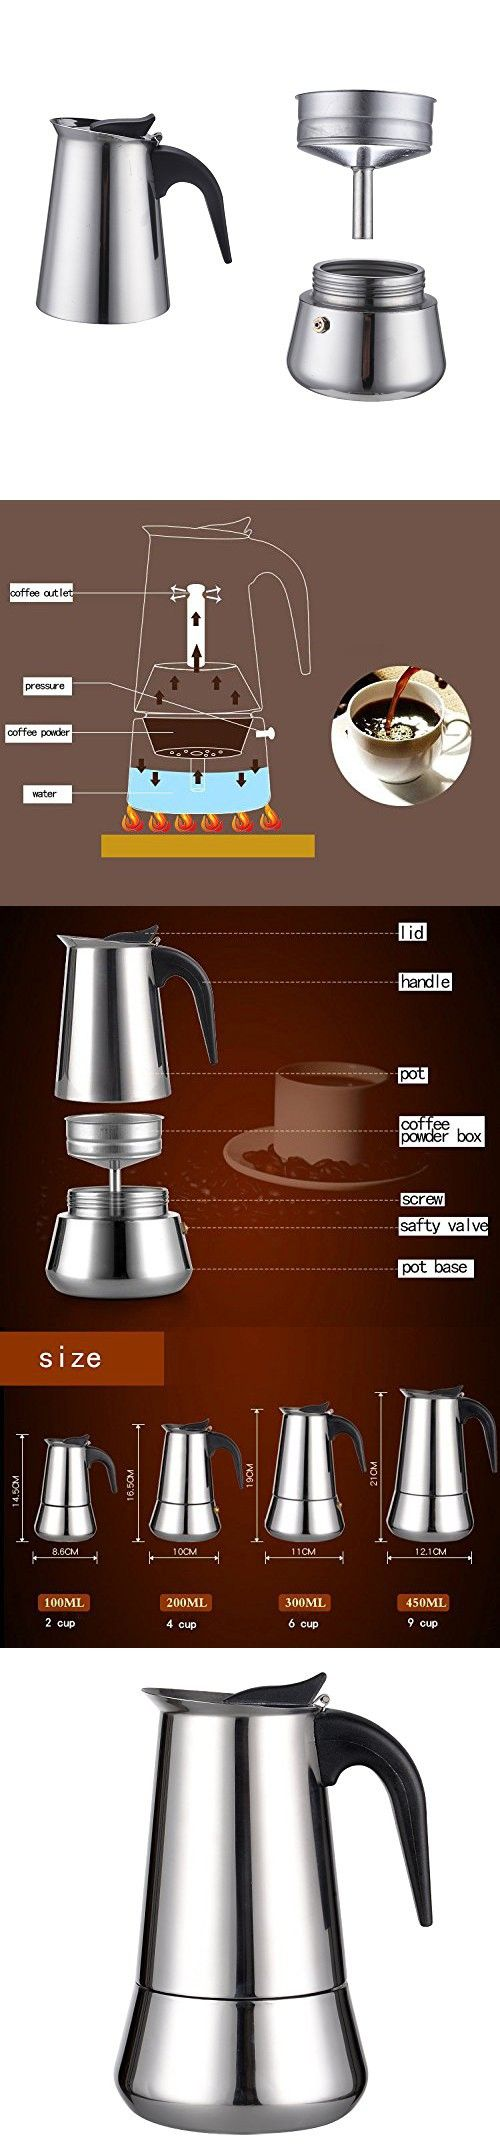 1000+ ideas about Stainless Steel Coffee Maker on Pinterest Red Coffee Maker, Glass Coffee ...